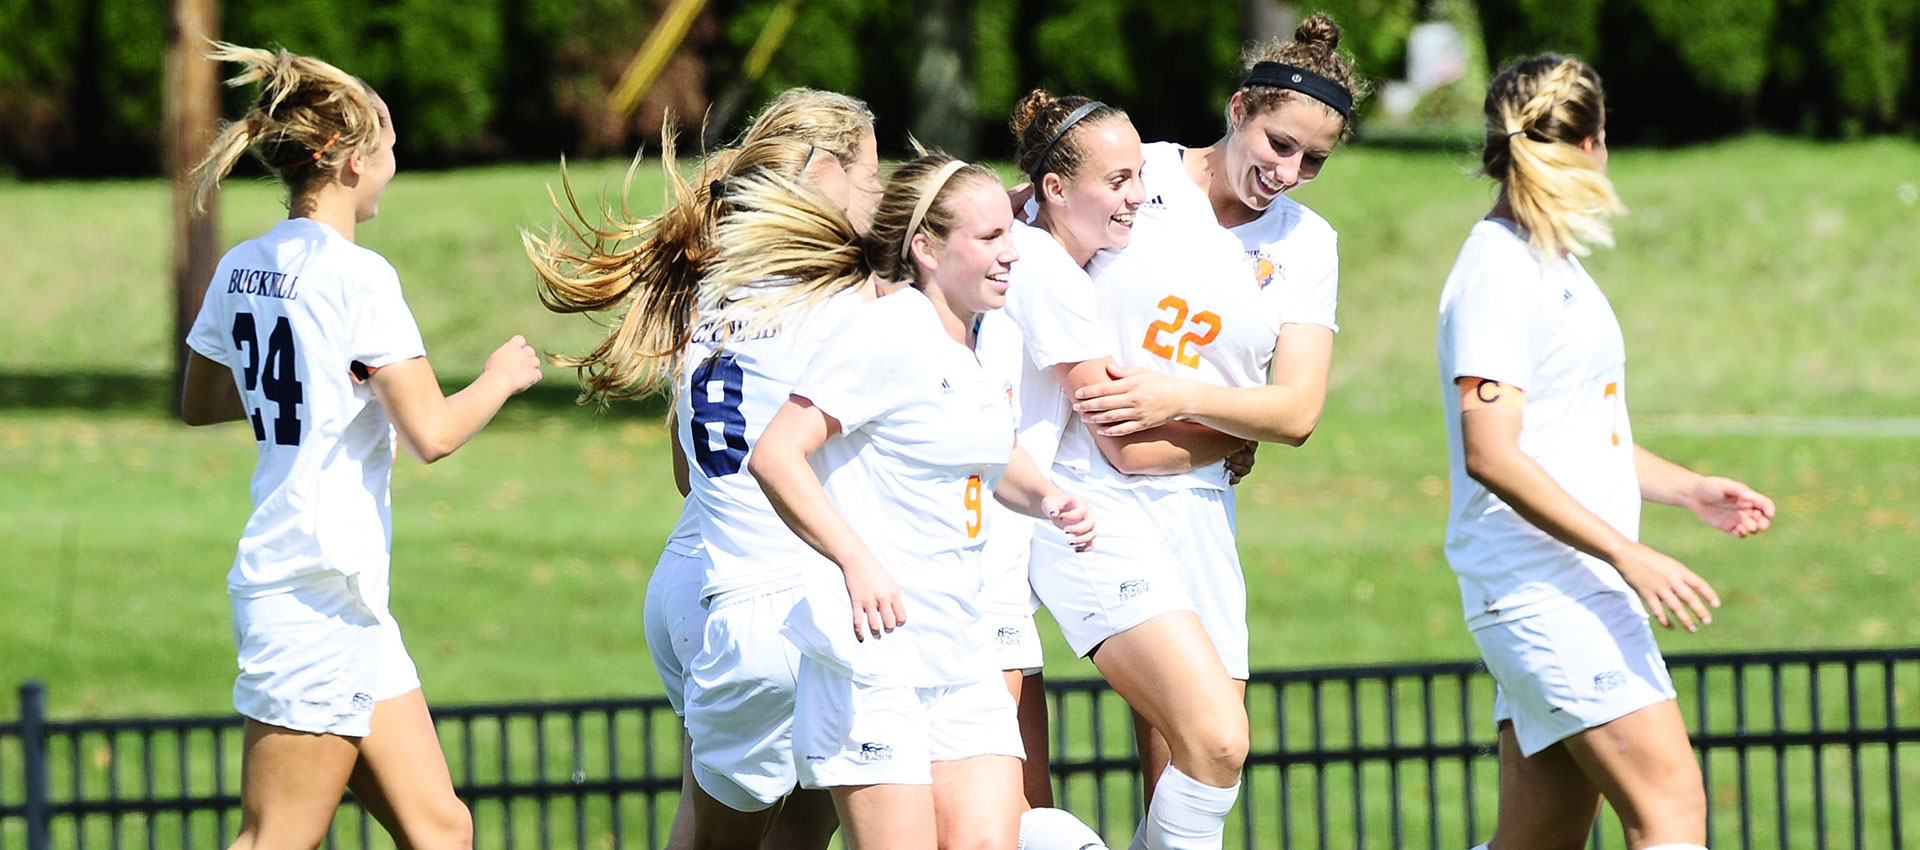 Bucknell soccer 8 homepage